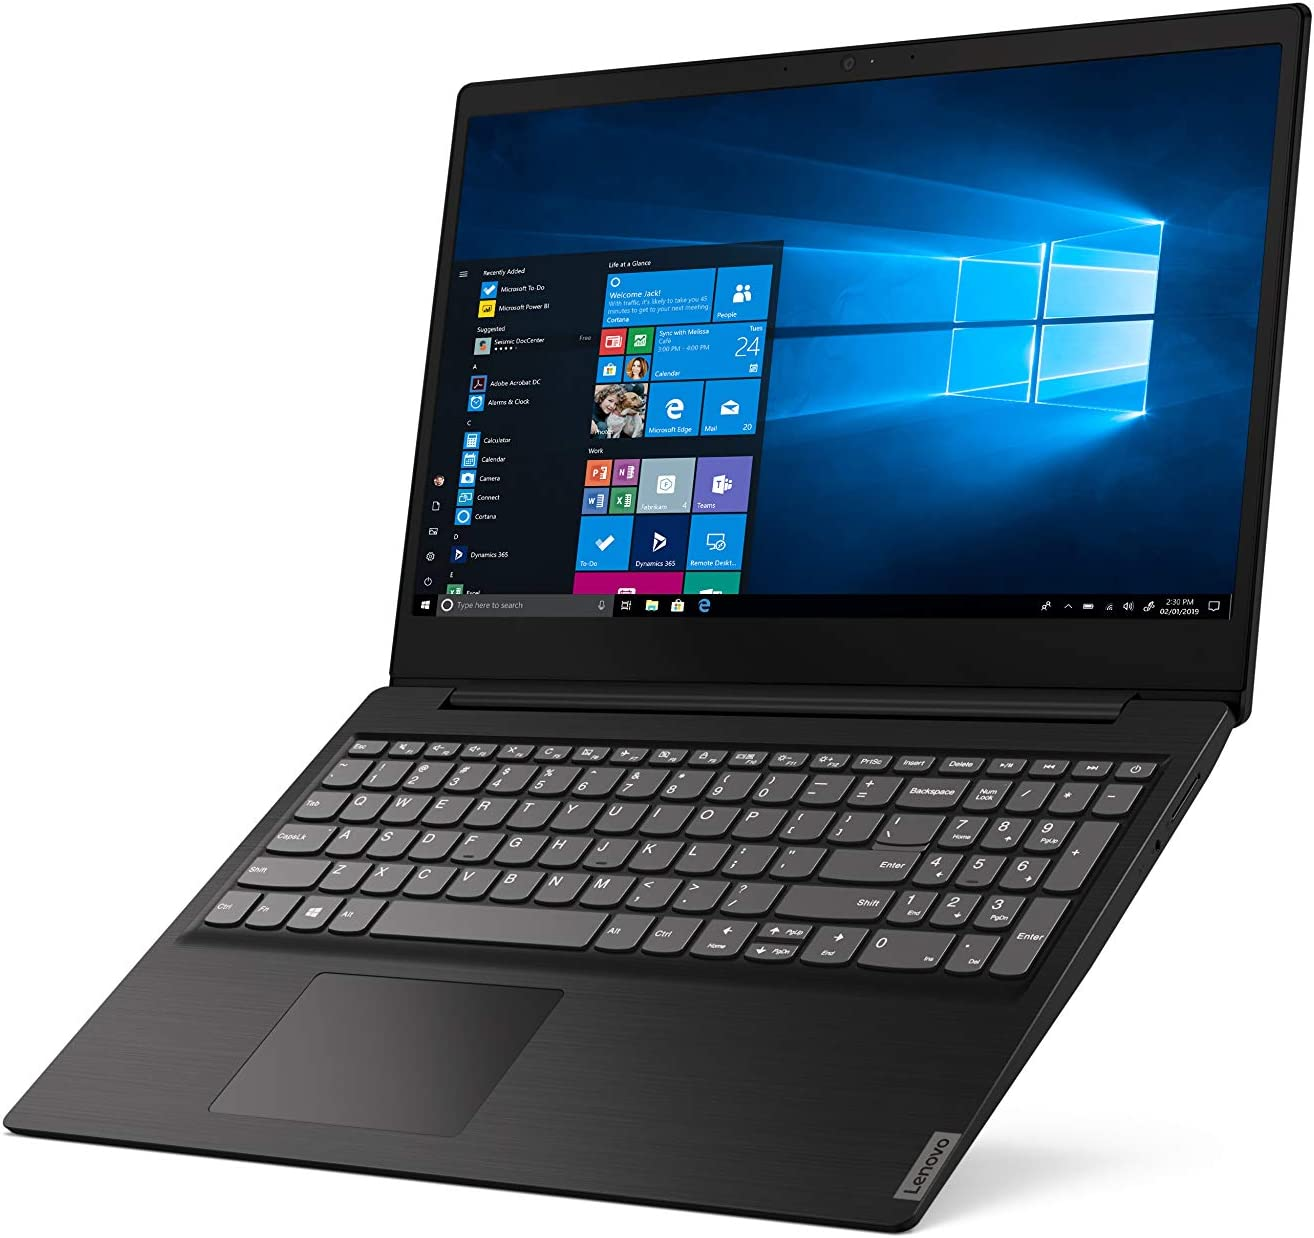 "Lenovo 15.6"" High Performance Laptop, Intel Celeron 42050U Dual-Core Processor, 4GB DDR4 RAM, 128GB SSD, Webcam, Wireless+Bluetooth, HDMI, Window 10 (Intel Processor)"